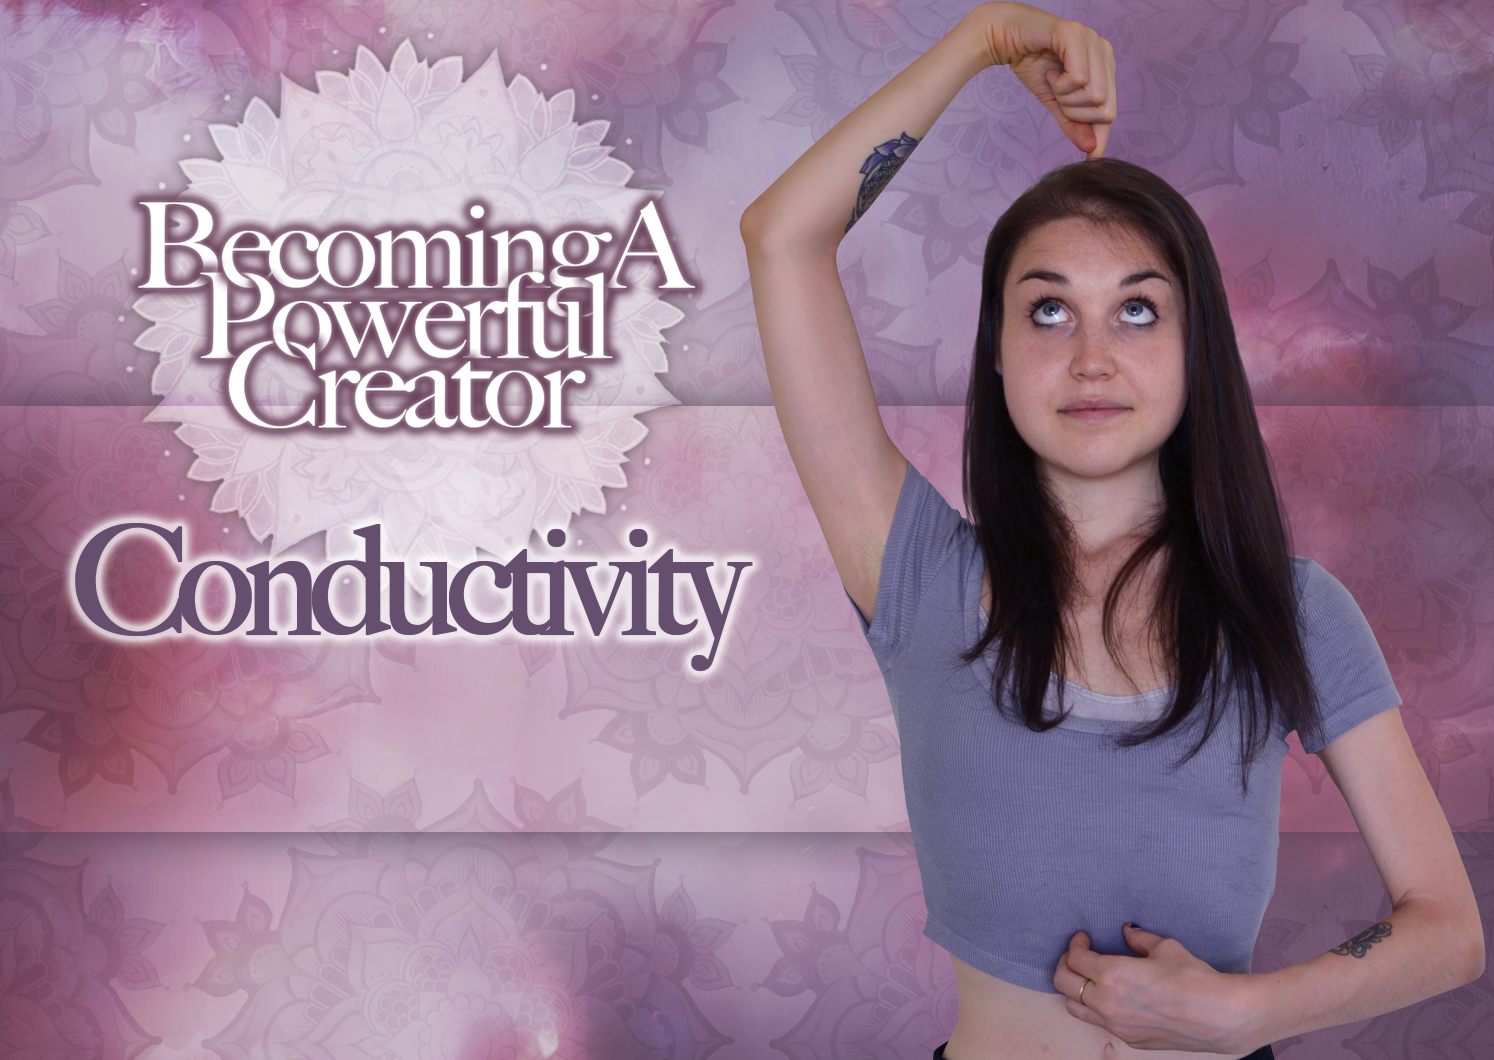 Conductivity – Becoming A Powerful Creator Part Three